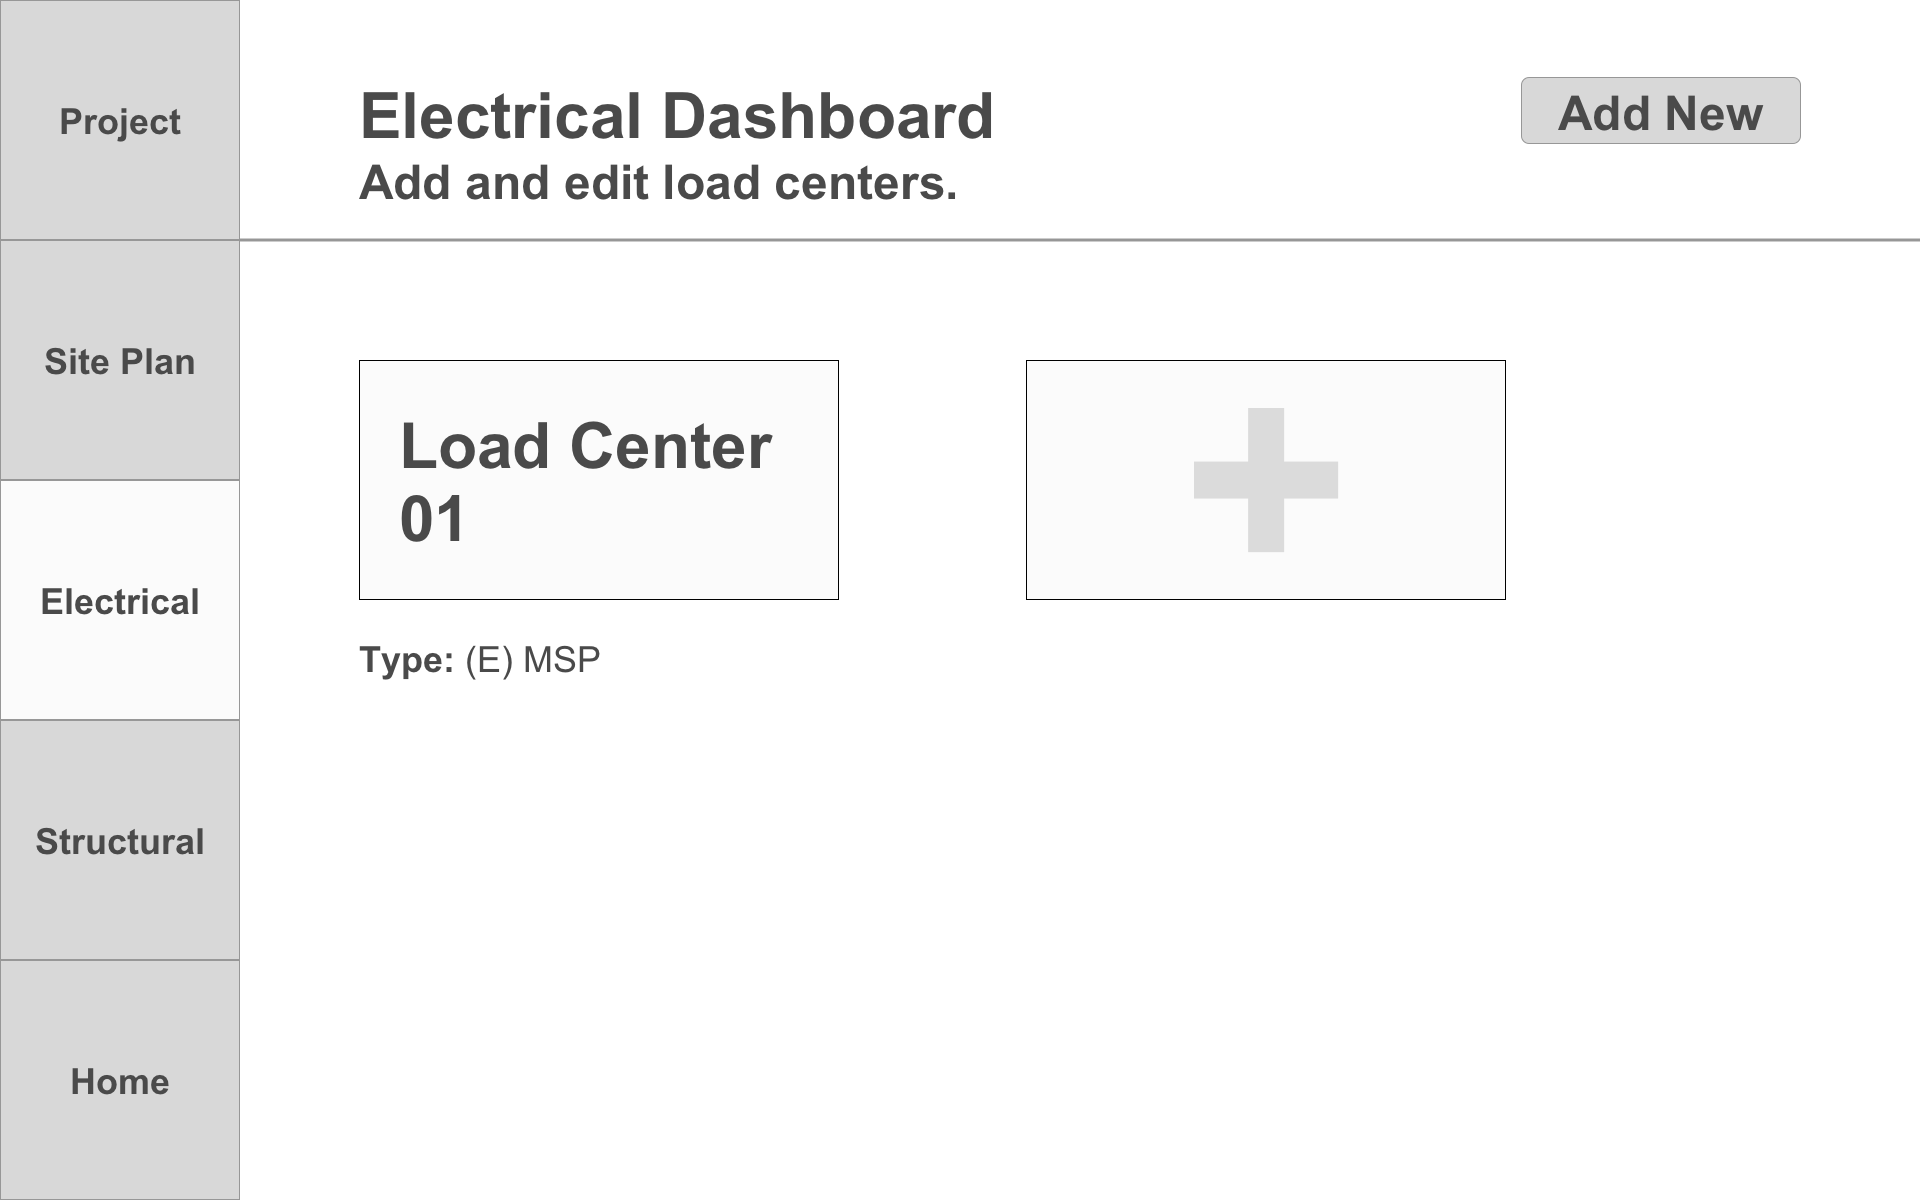 3.0.0_Electrical_Dashboard.png